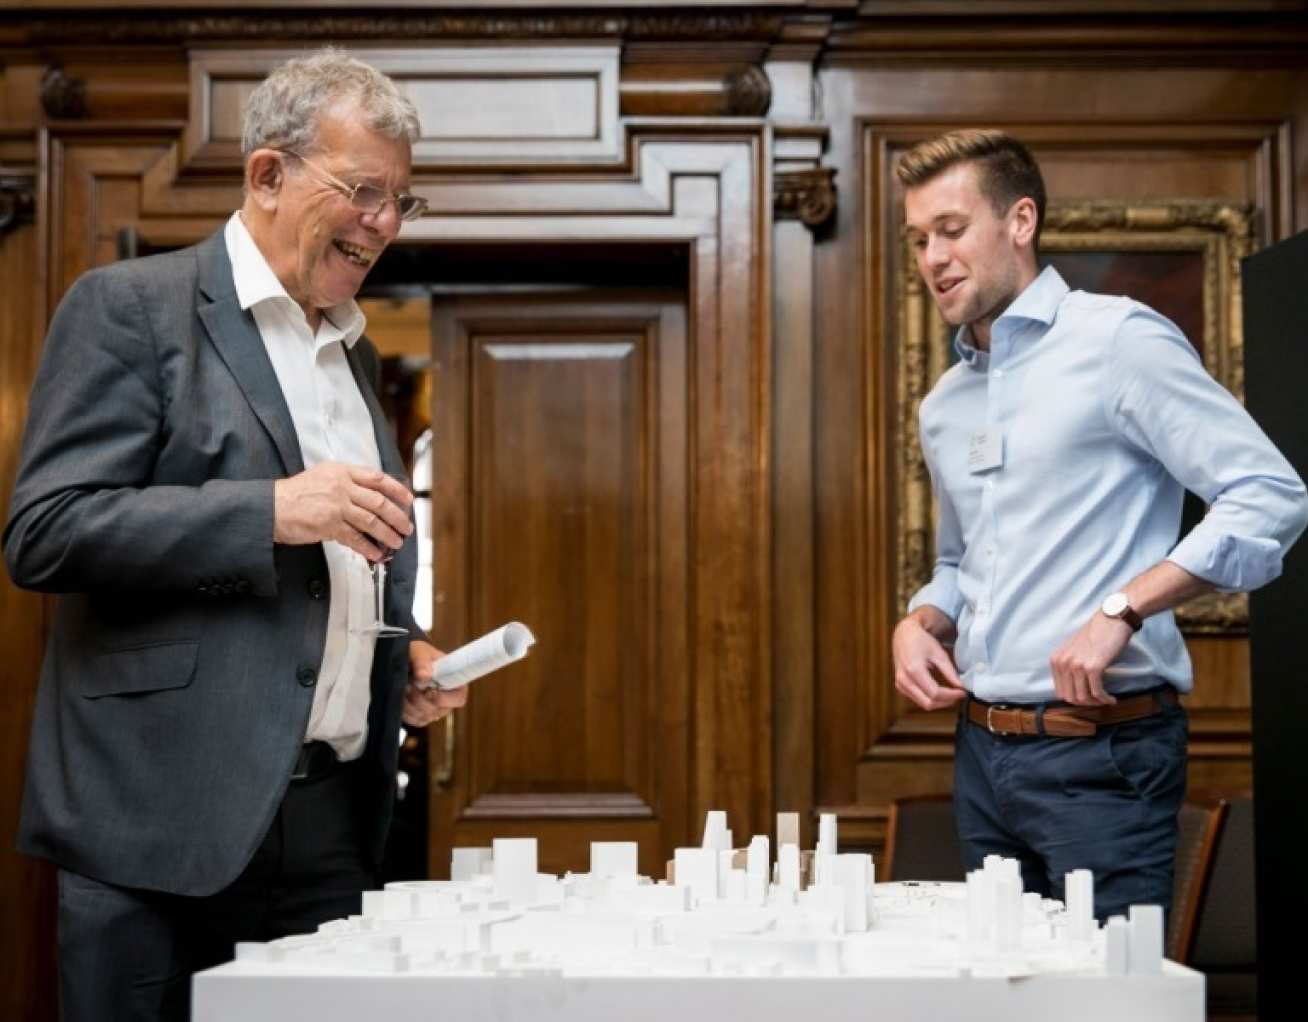 Chris Skidmore meets with White City External Affairs Officer Dan West